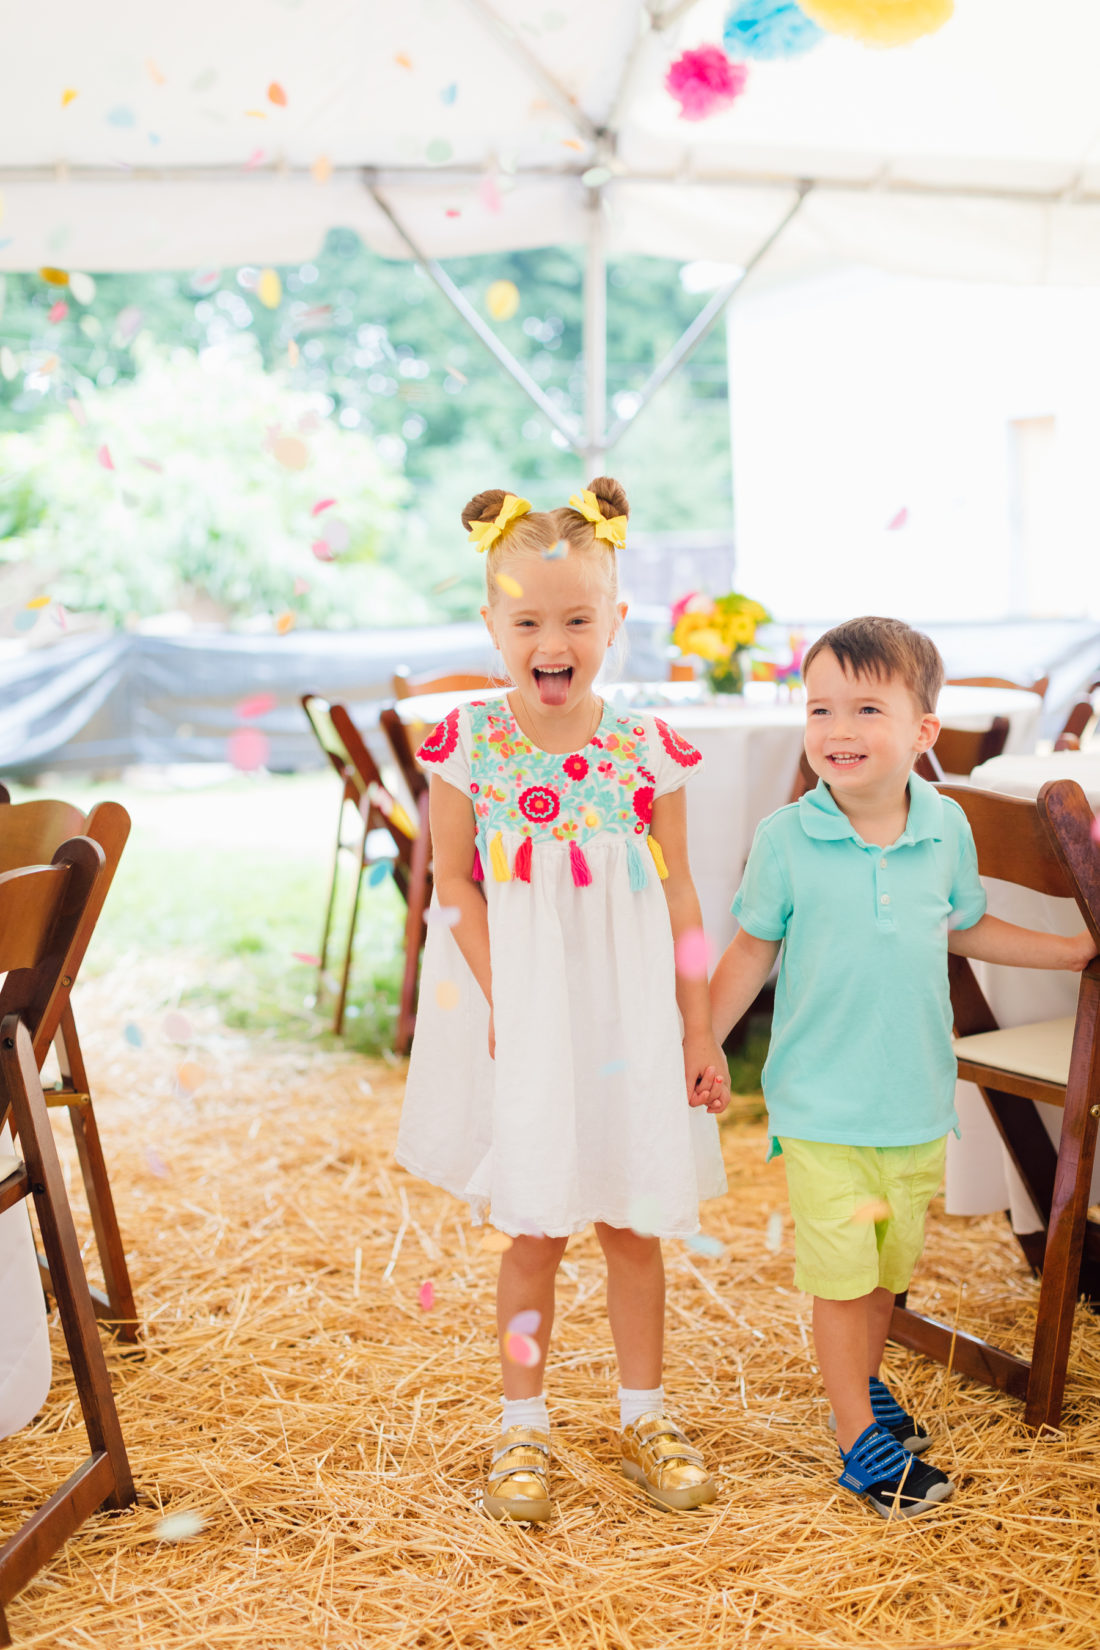 Marlowe Martino and brother Major at her Cinco de Marlowe themed 5th birthday fiesta